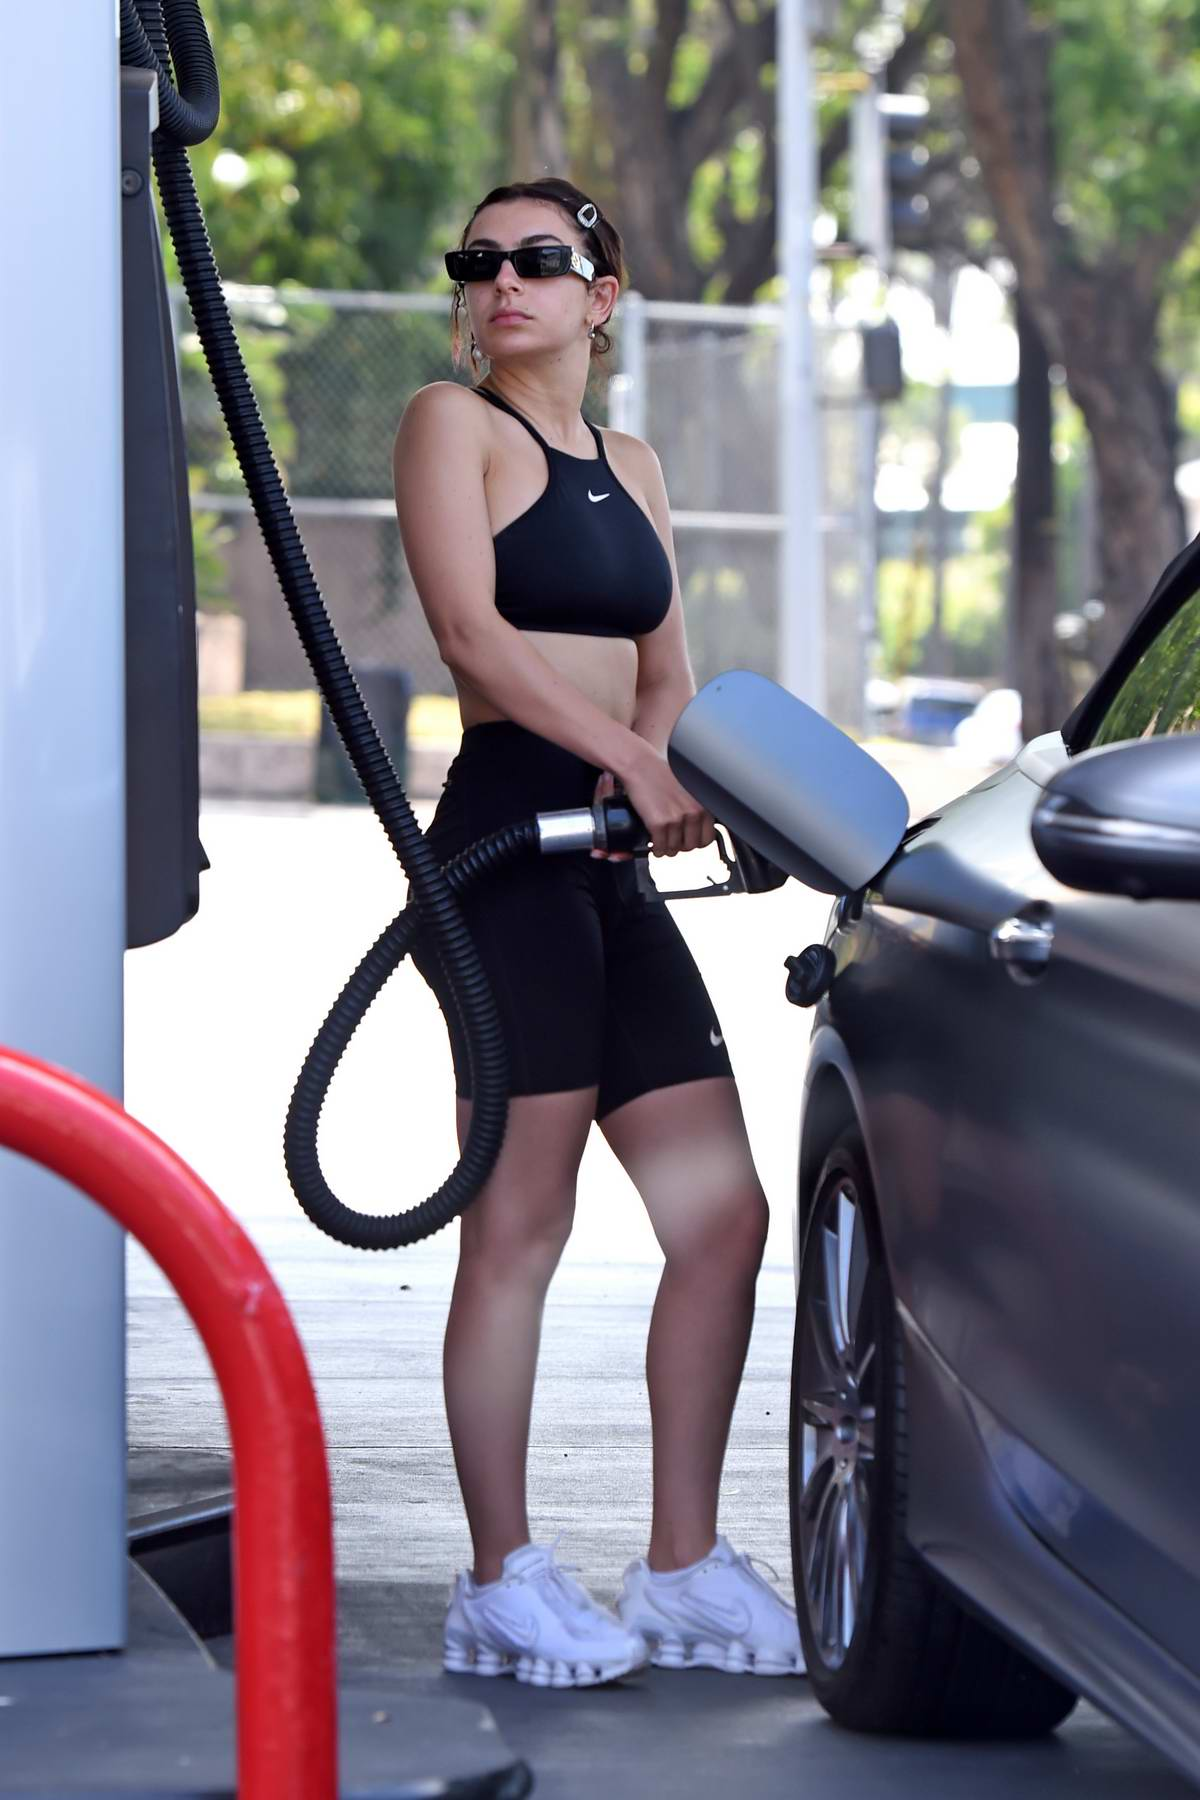 Charli XCX pumps gas after wrapping her workout session in Los Angeles